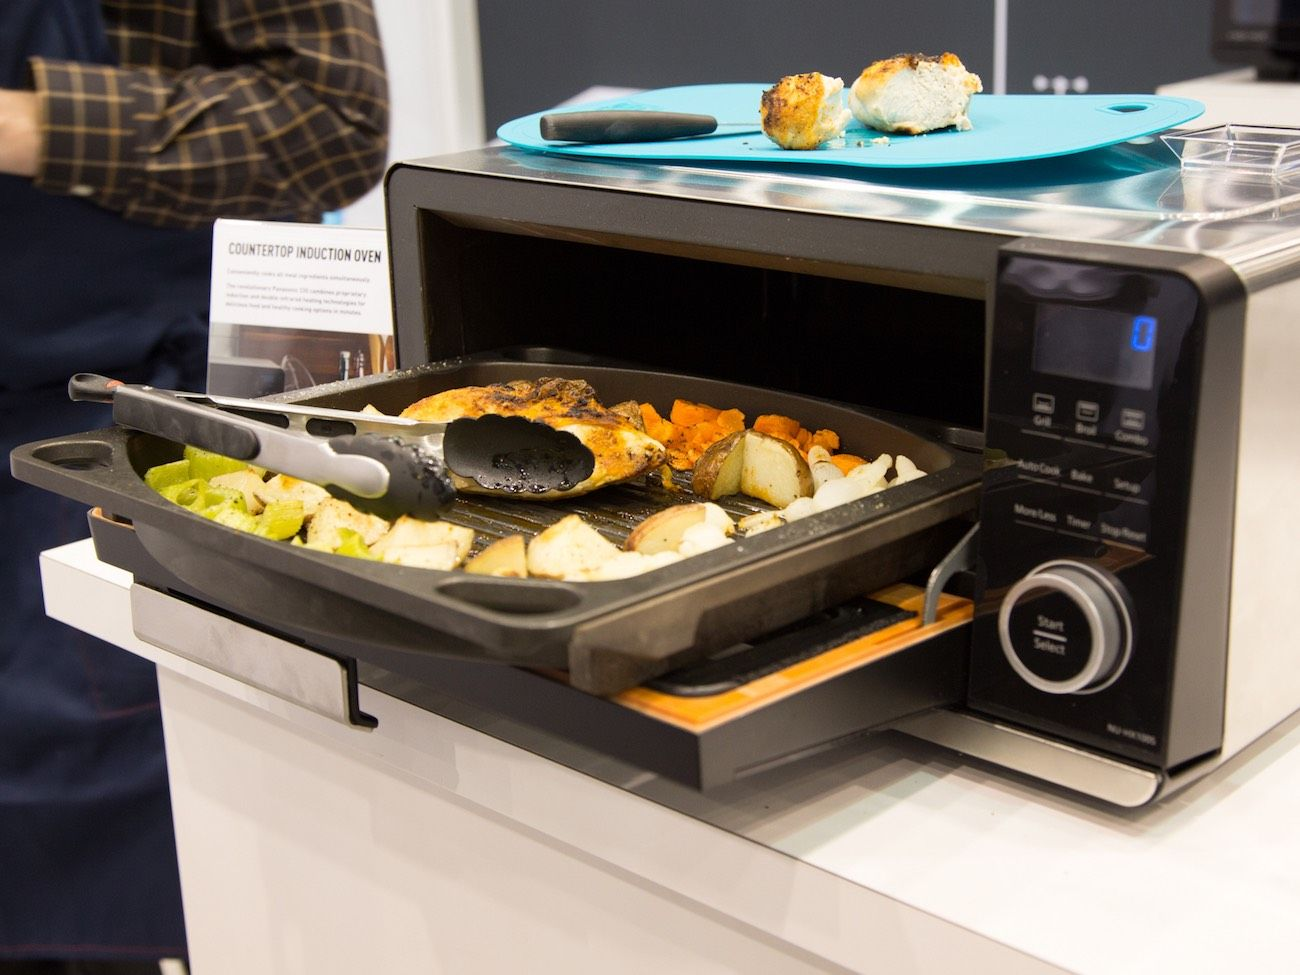 Panasonic Countertop Induction Oven With Images Induction Oven